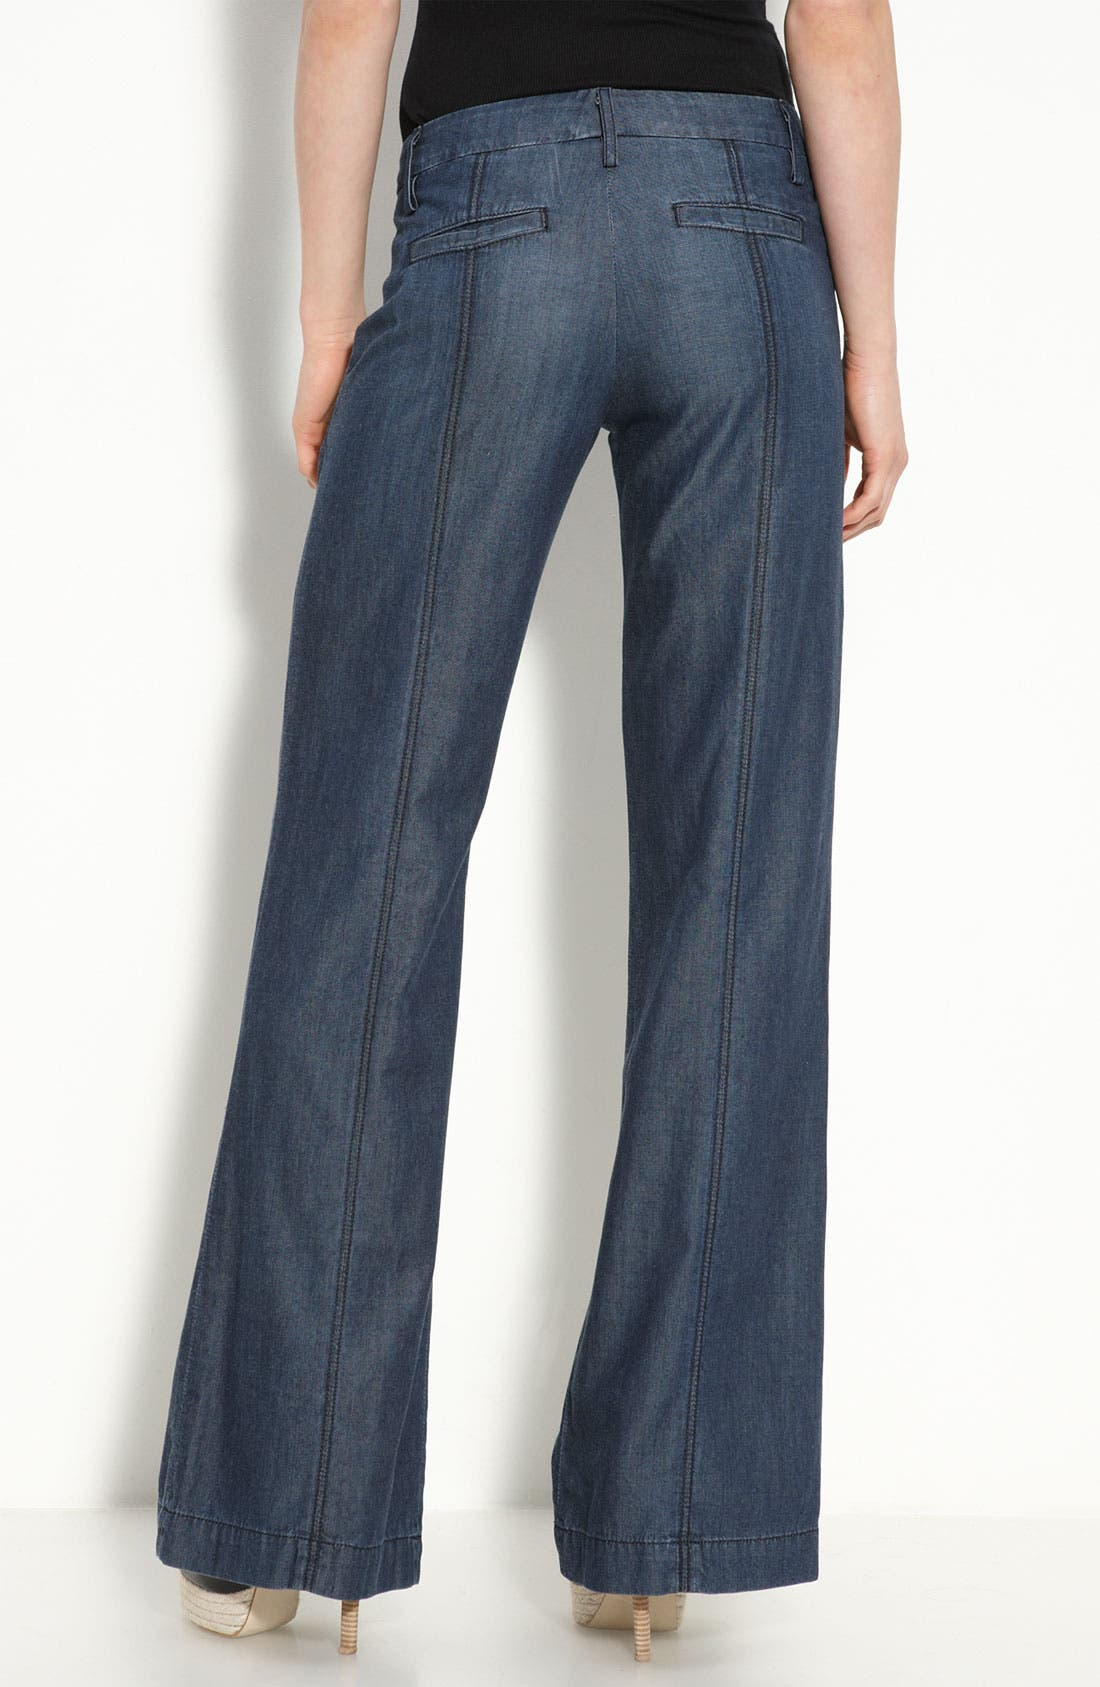 Alternate Image 1 Selected - Rich & Skinny 'Island' Stretch Trousers (River Rinse Wash)